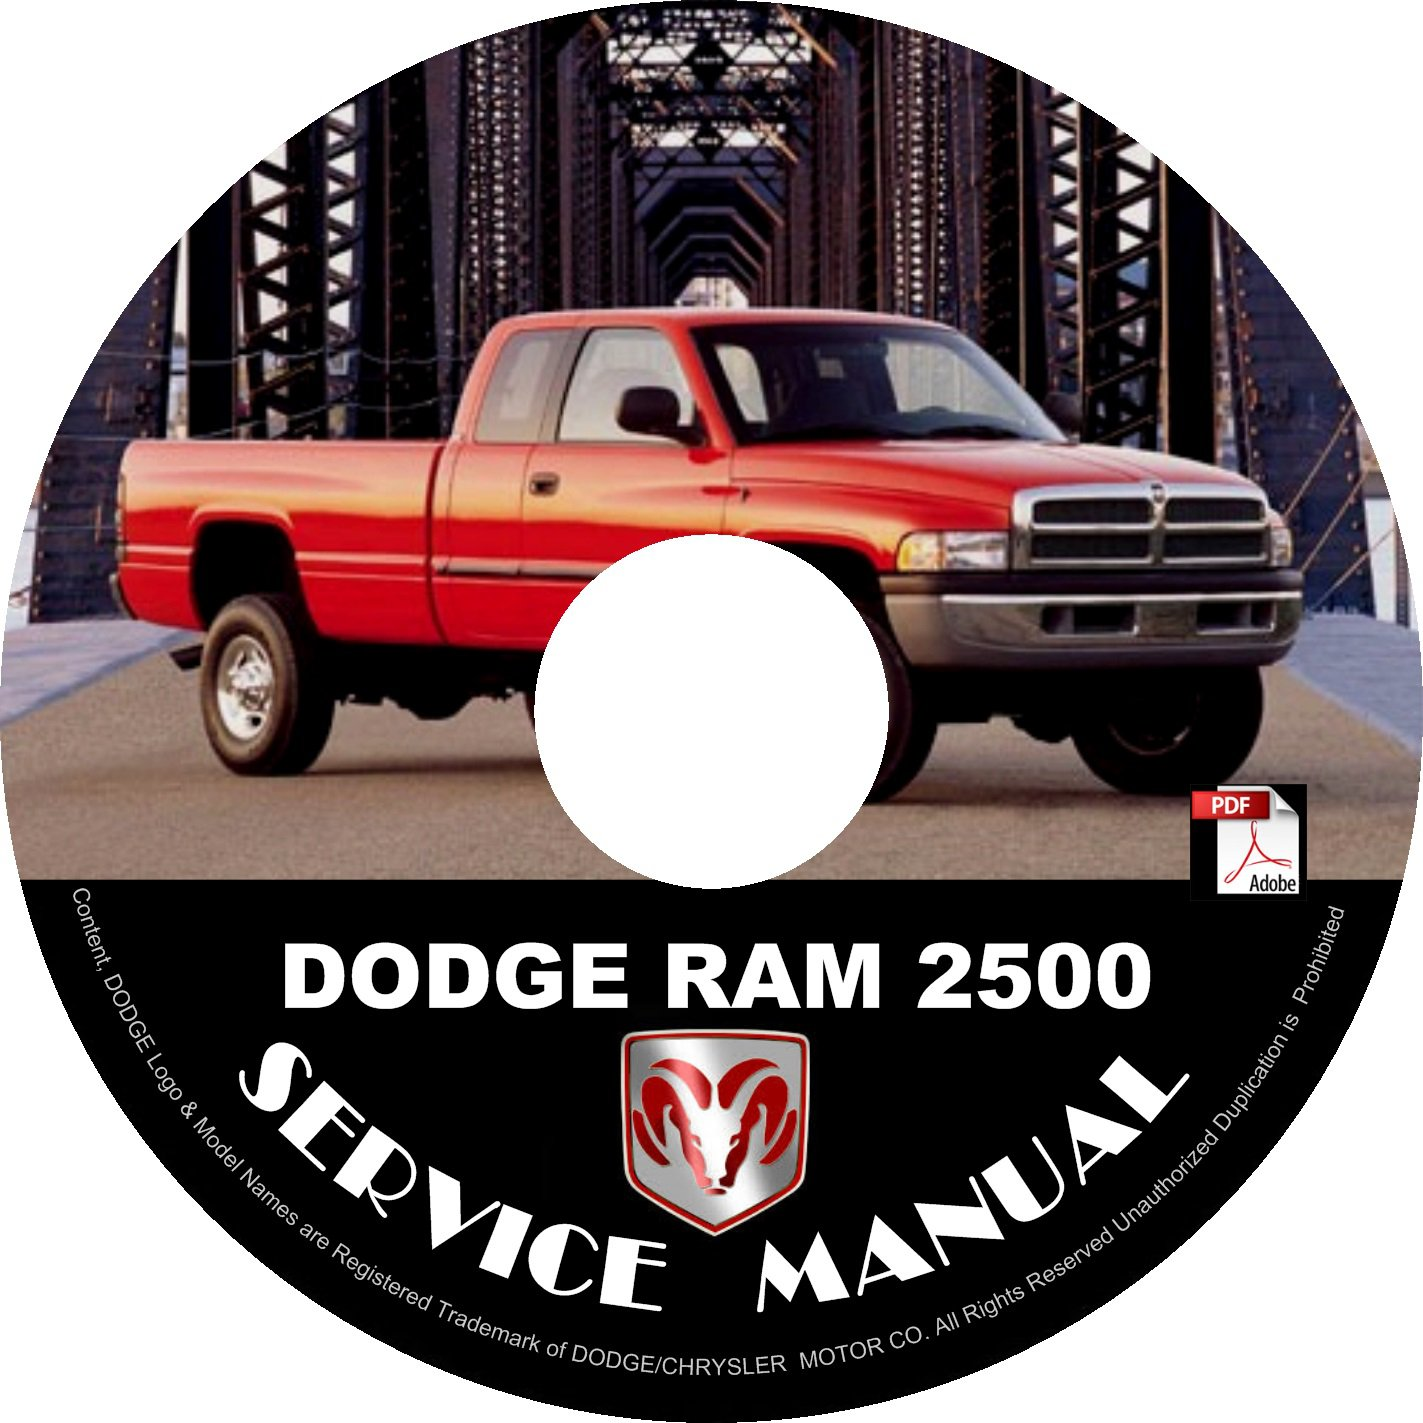 2001 Dodge RAM 2500 Factory Service Repair Shop Manual on CD Fix Repair Rebuilt